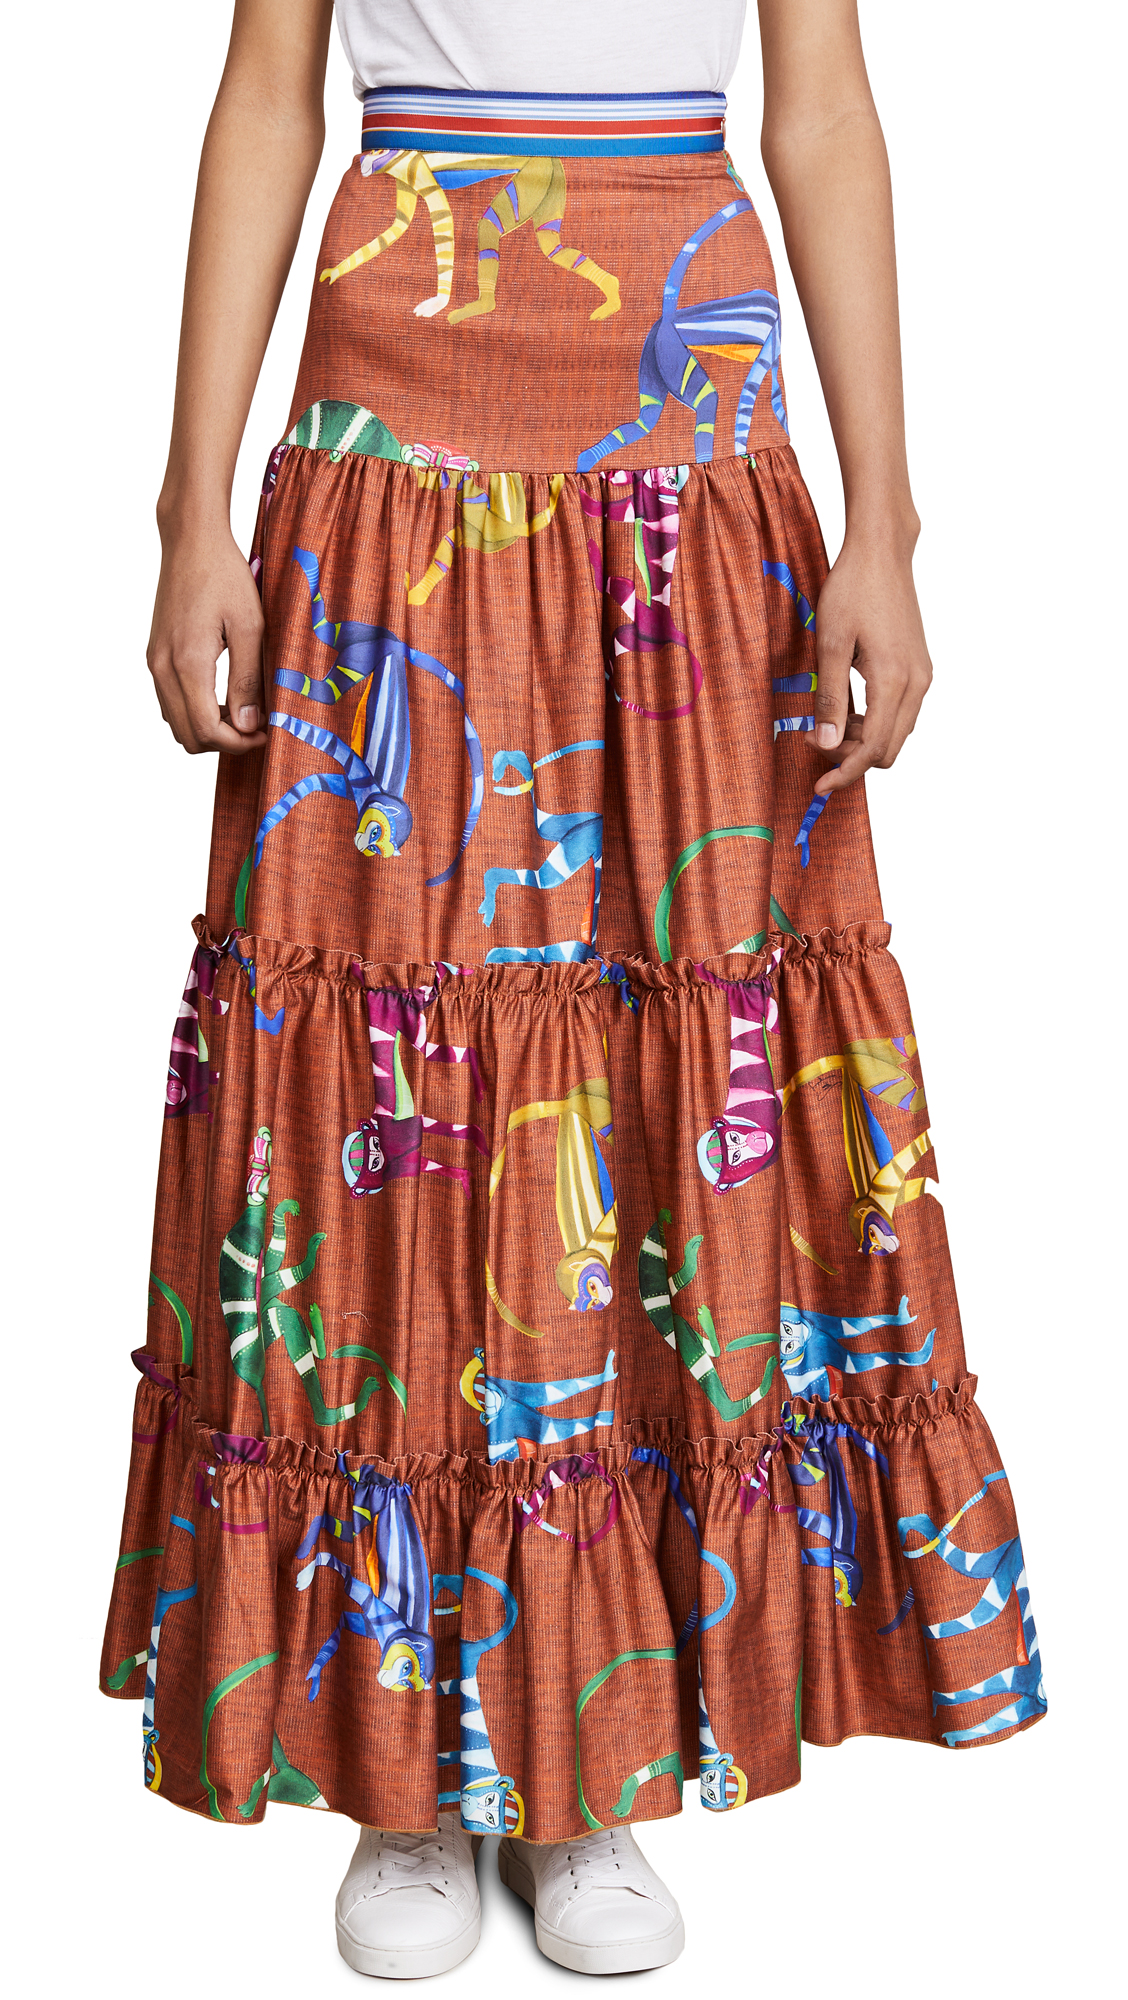 Stella Jean Monkey Print Maxi Skirt - Orange Multi